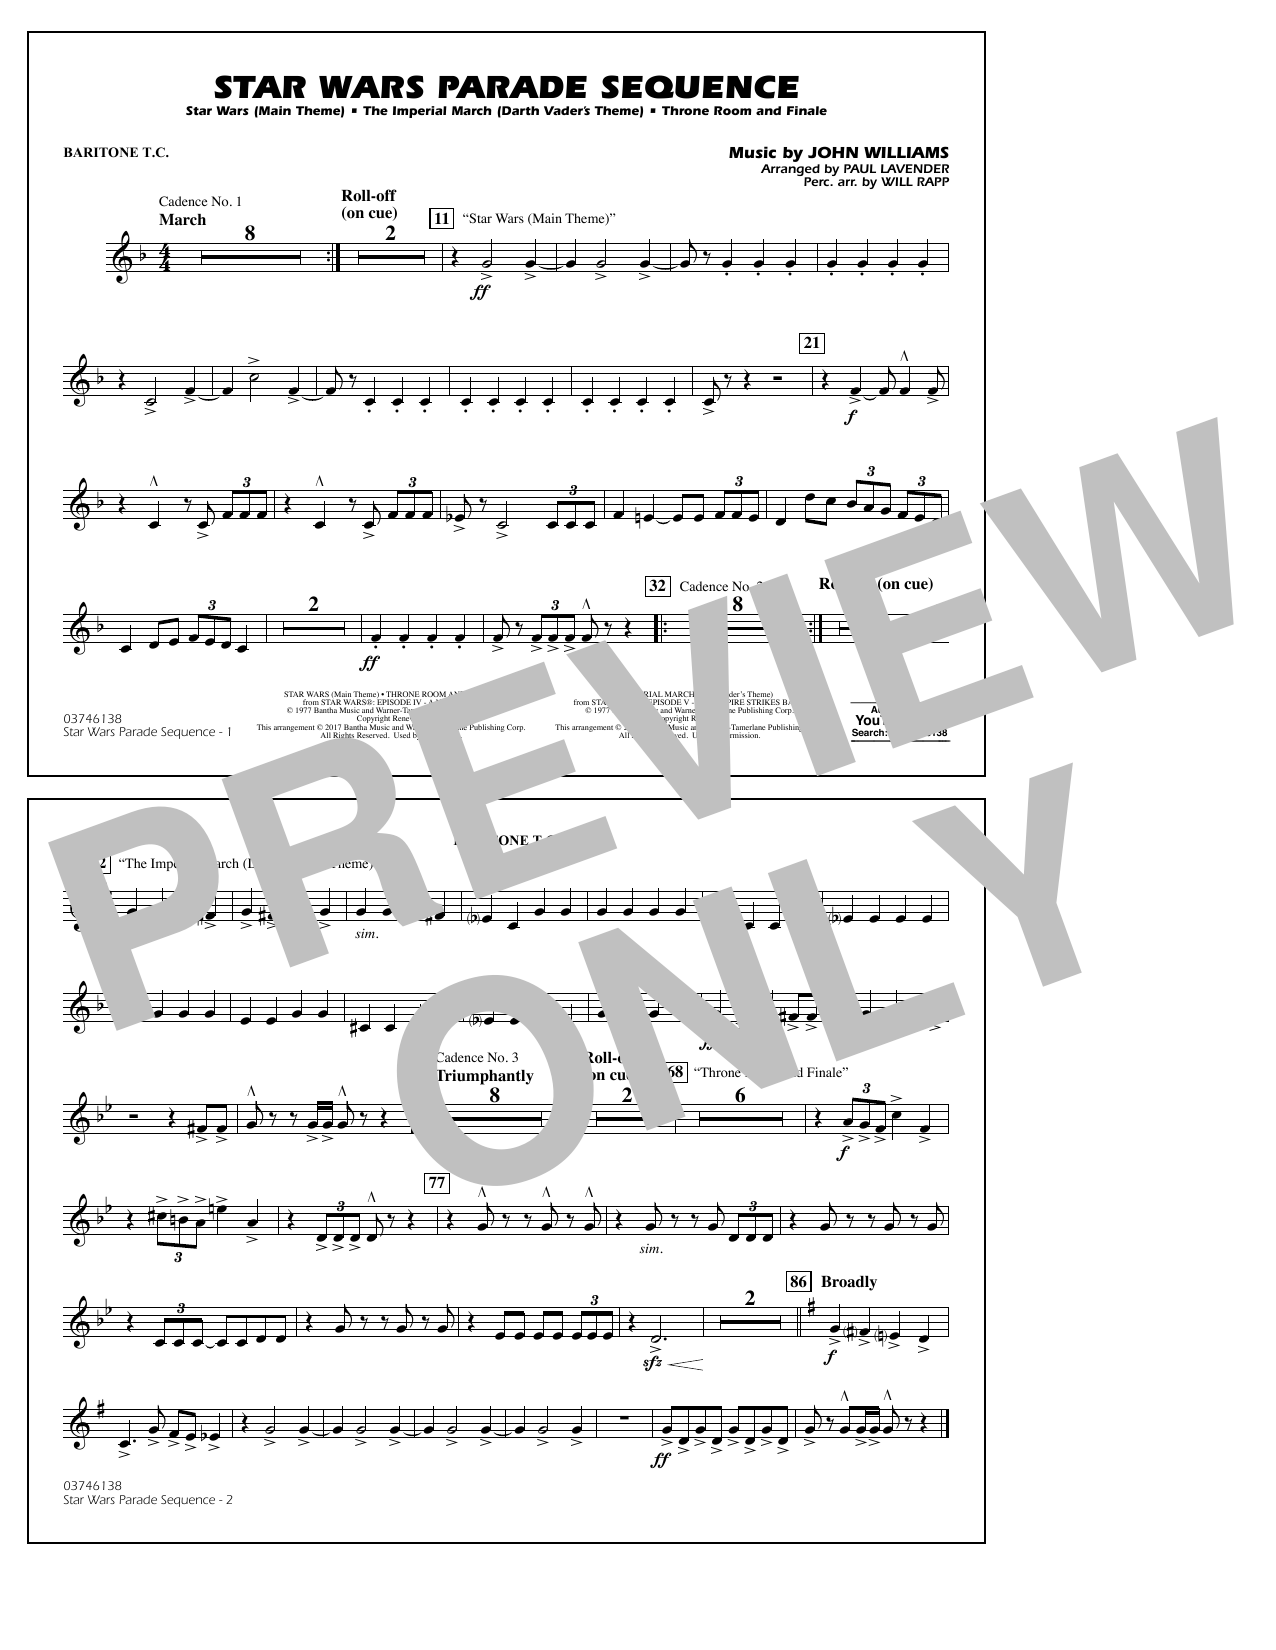 Star Wars Parade Sequence - Baritone T.C. Sheet Music